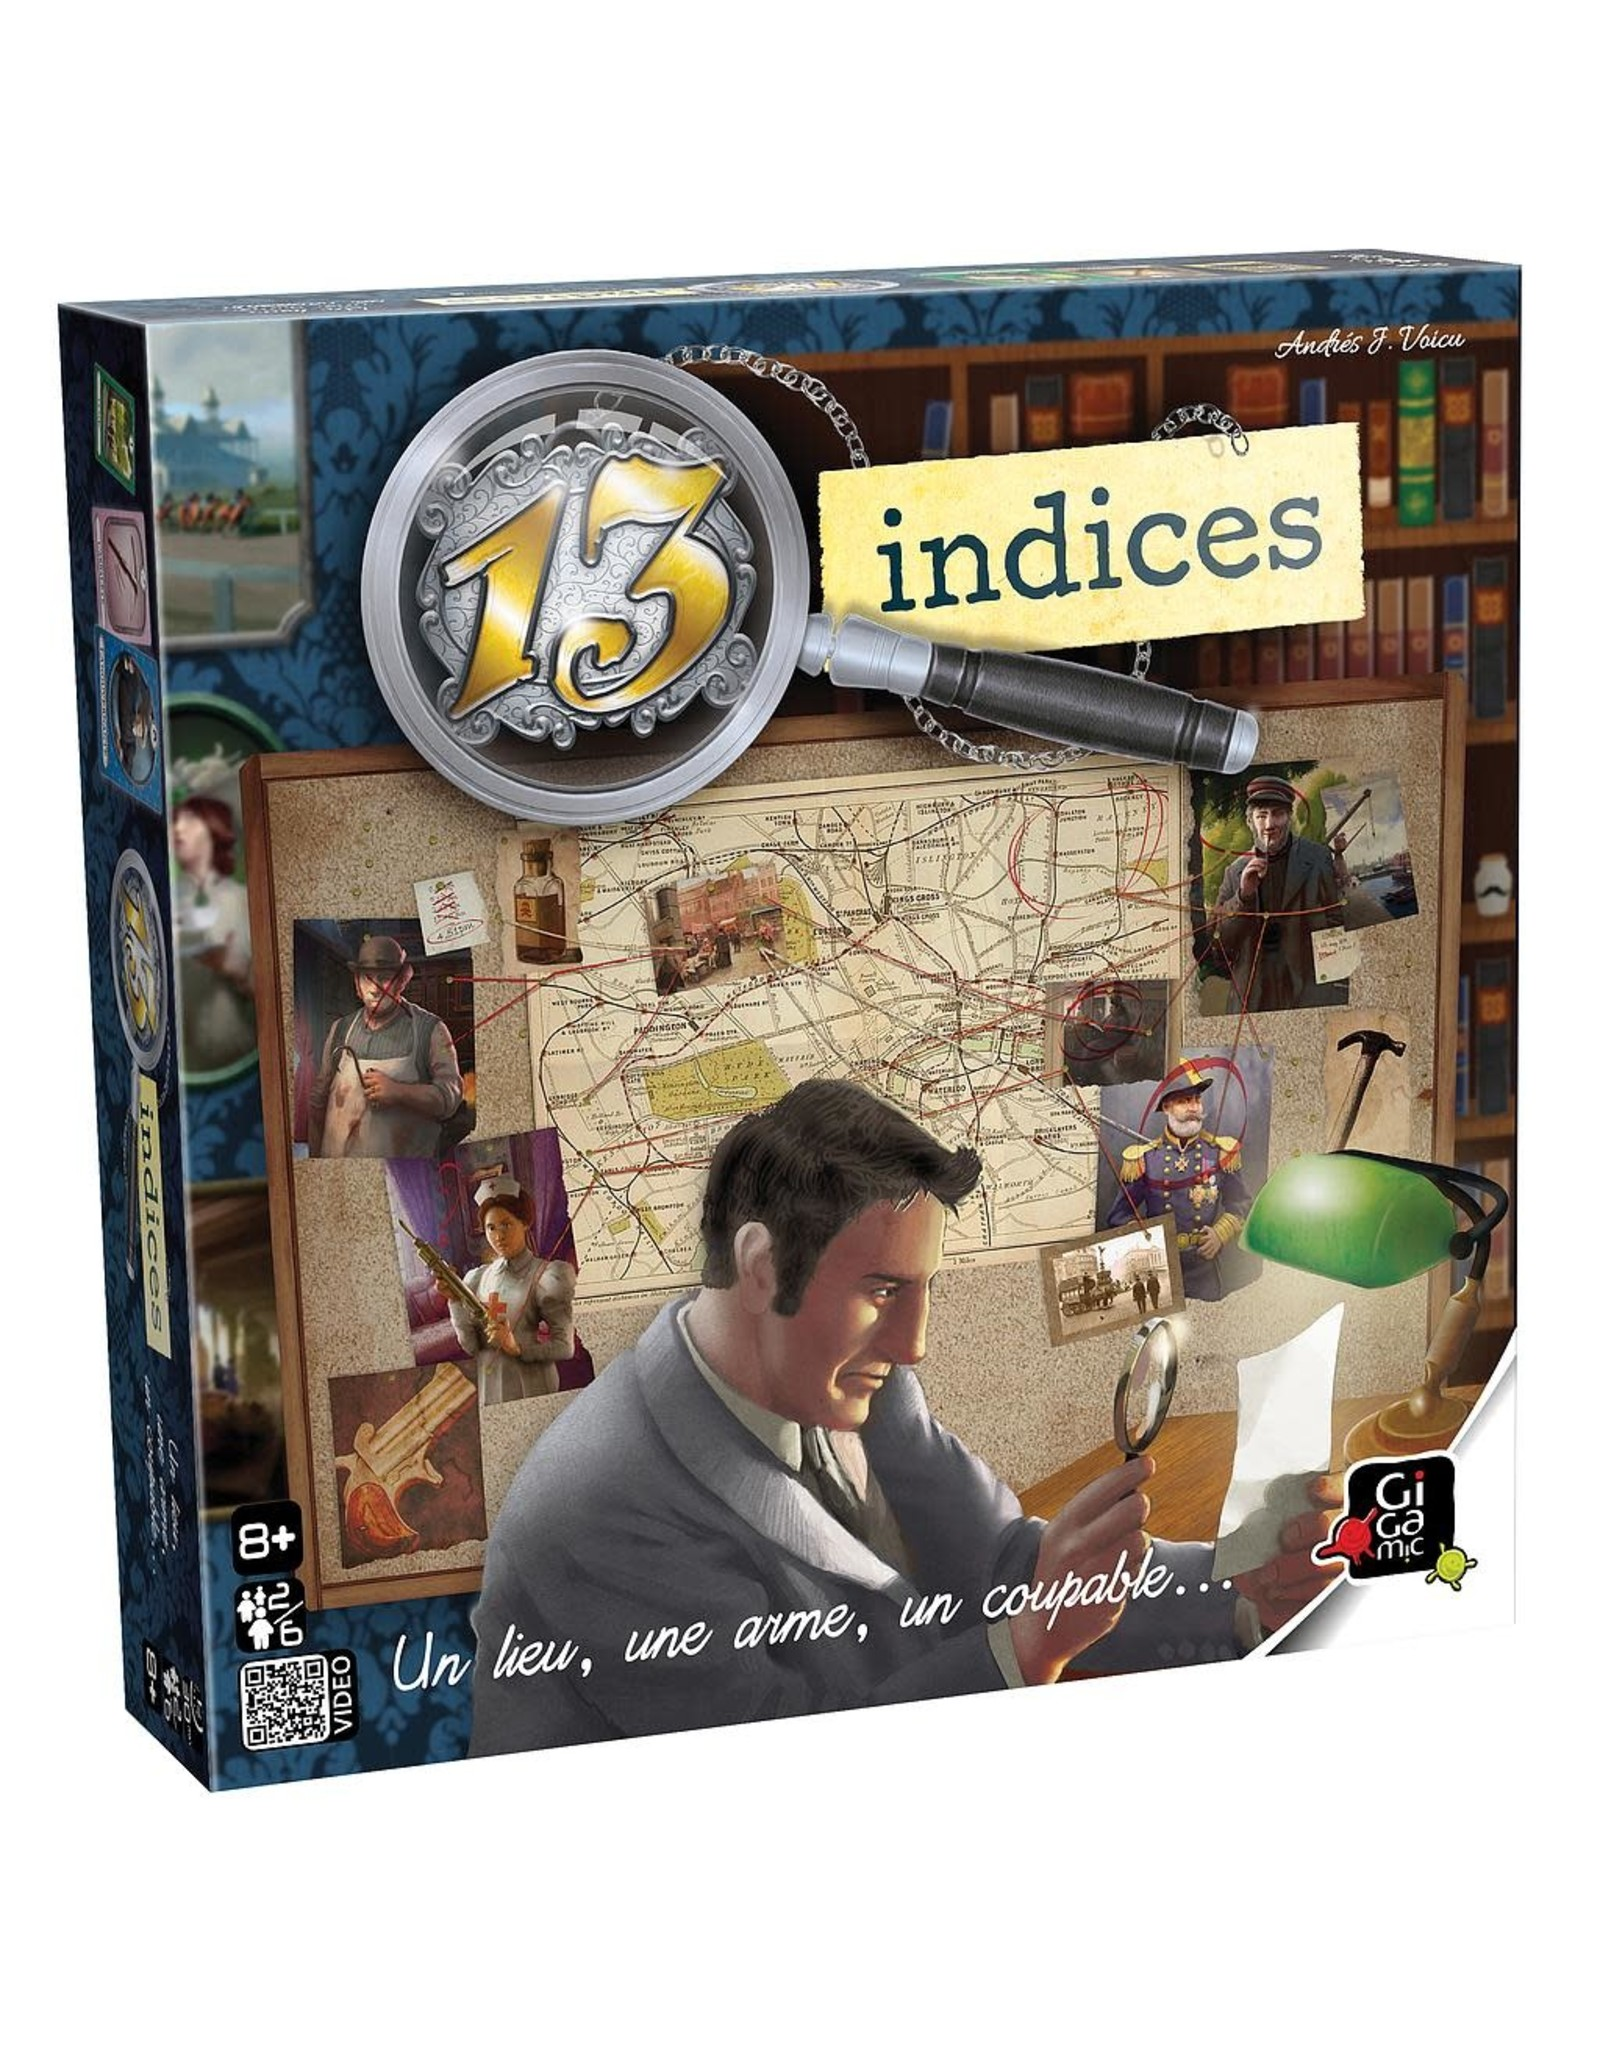 Gigamic 13 Indices